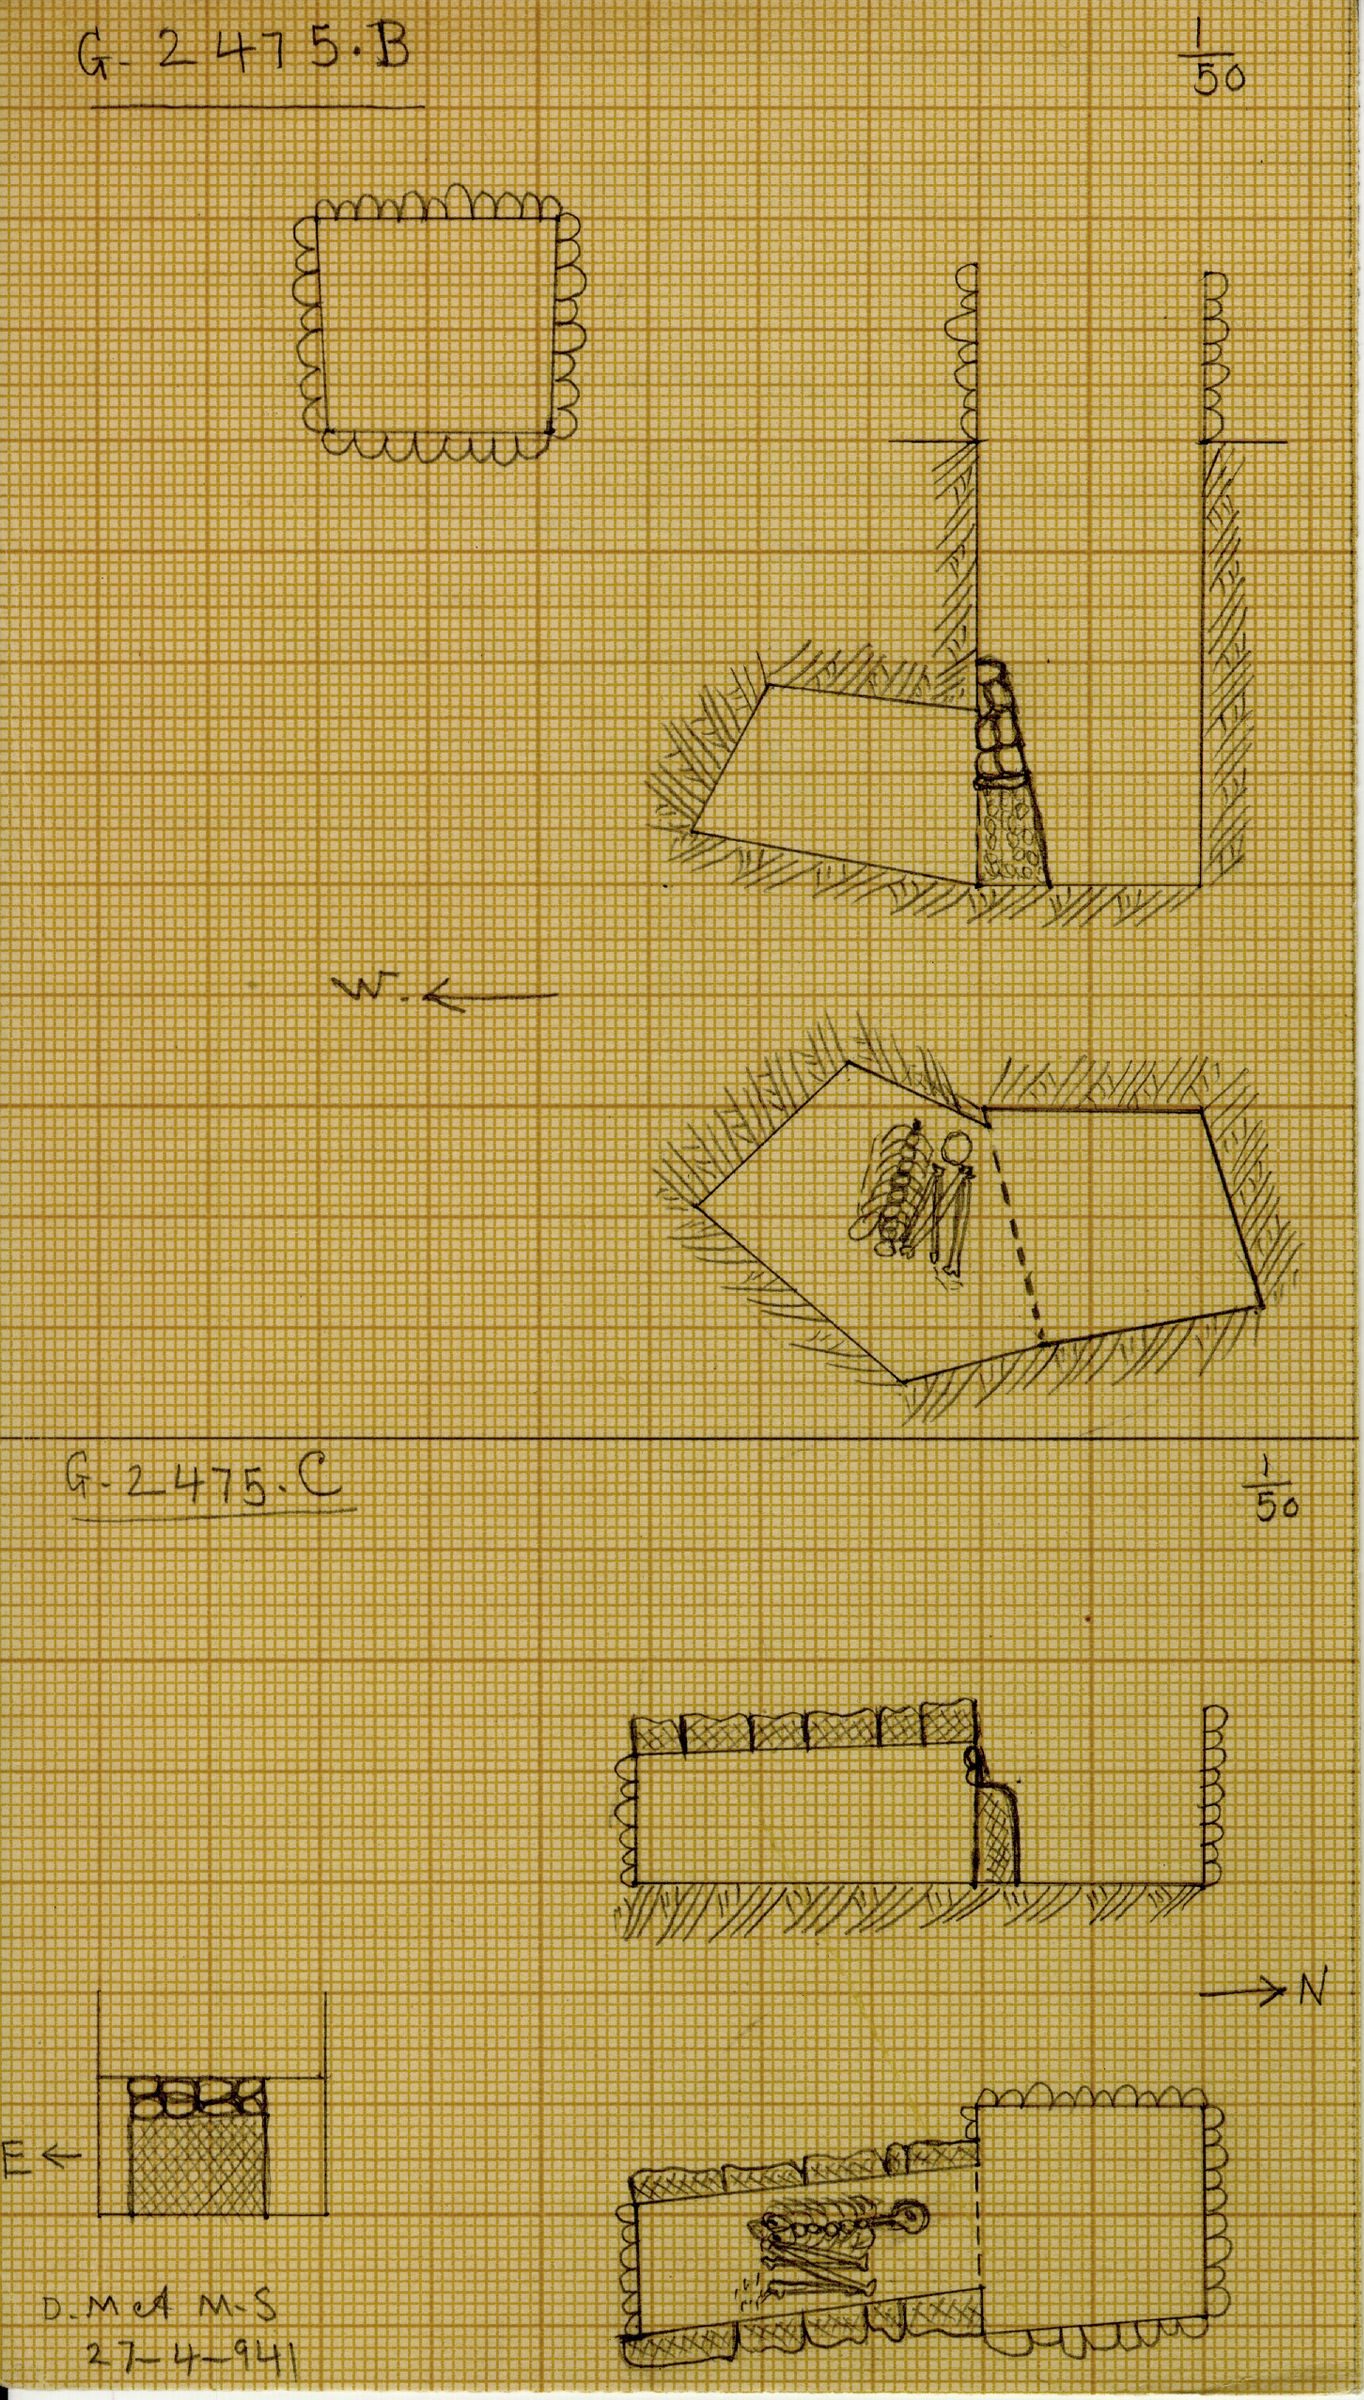 Maps and plans: G 2475, Shaft B and C